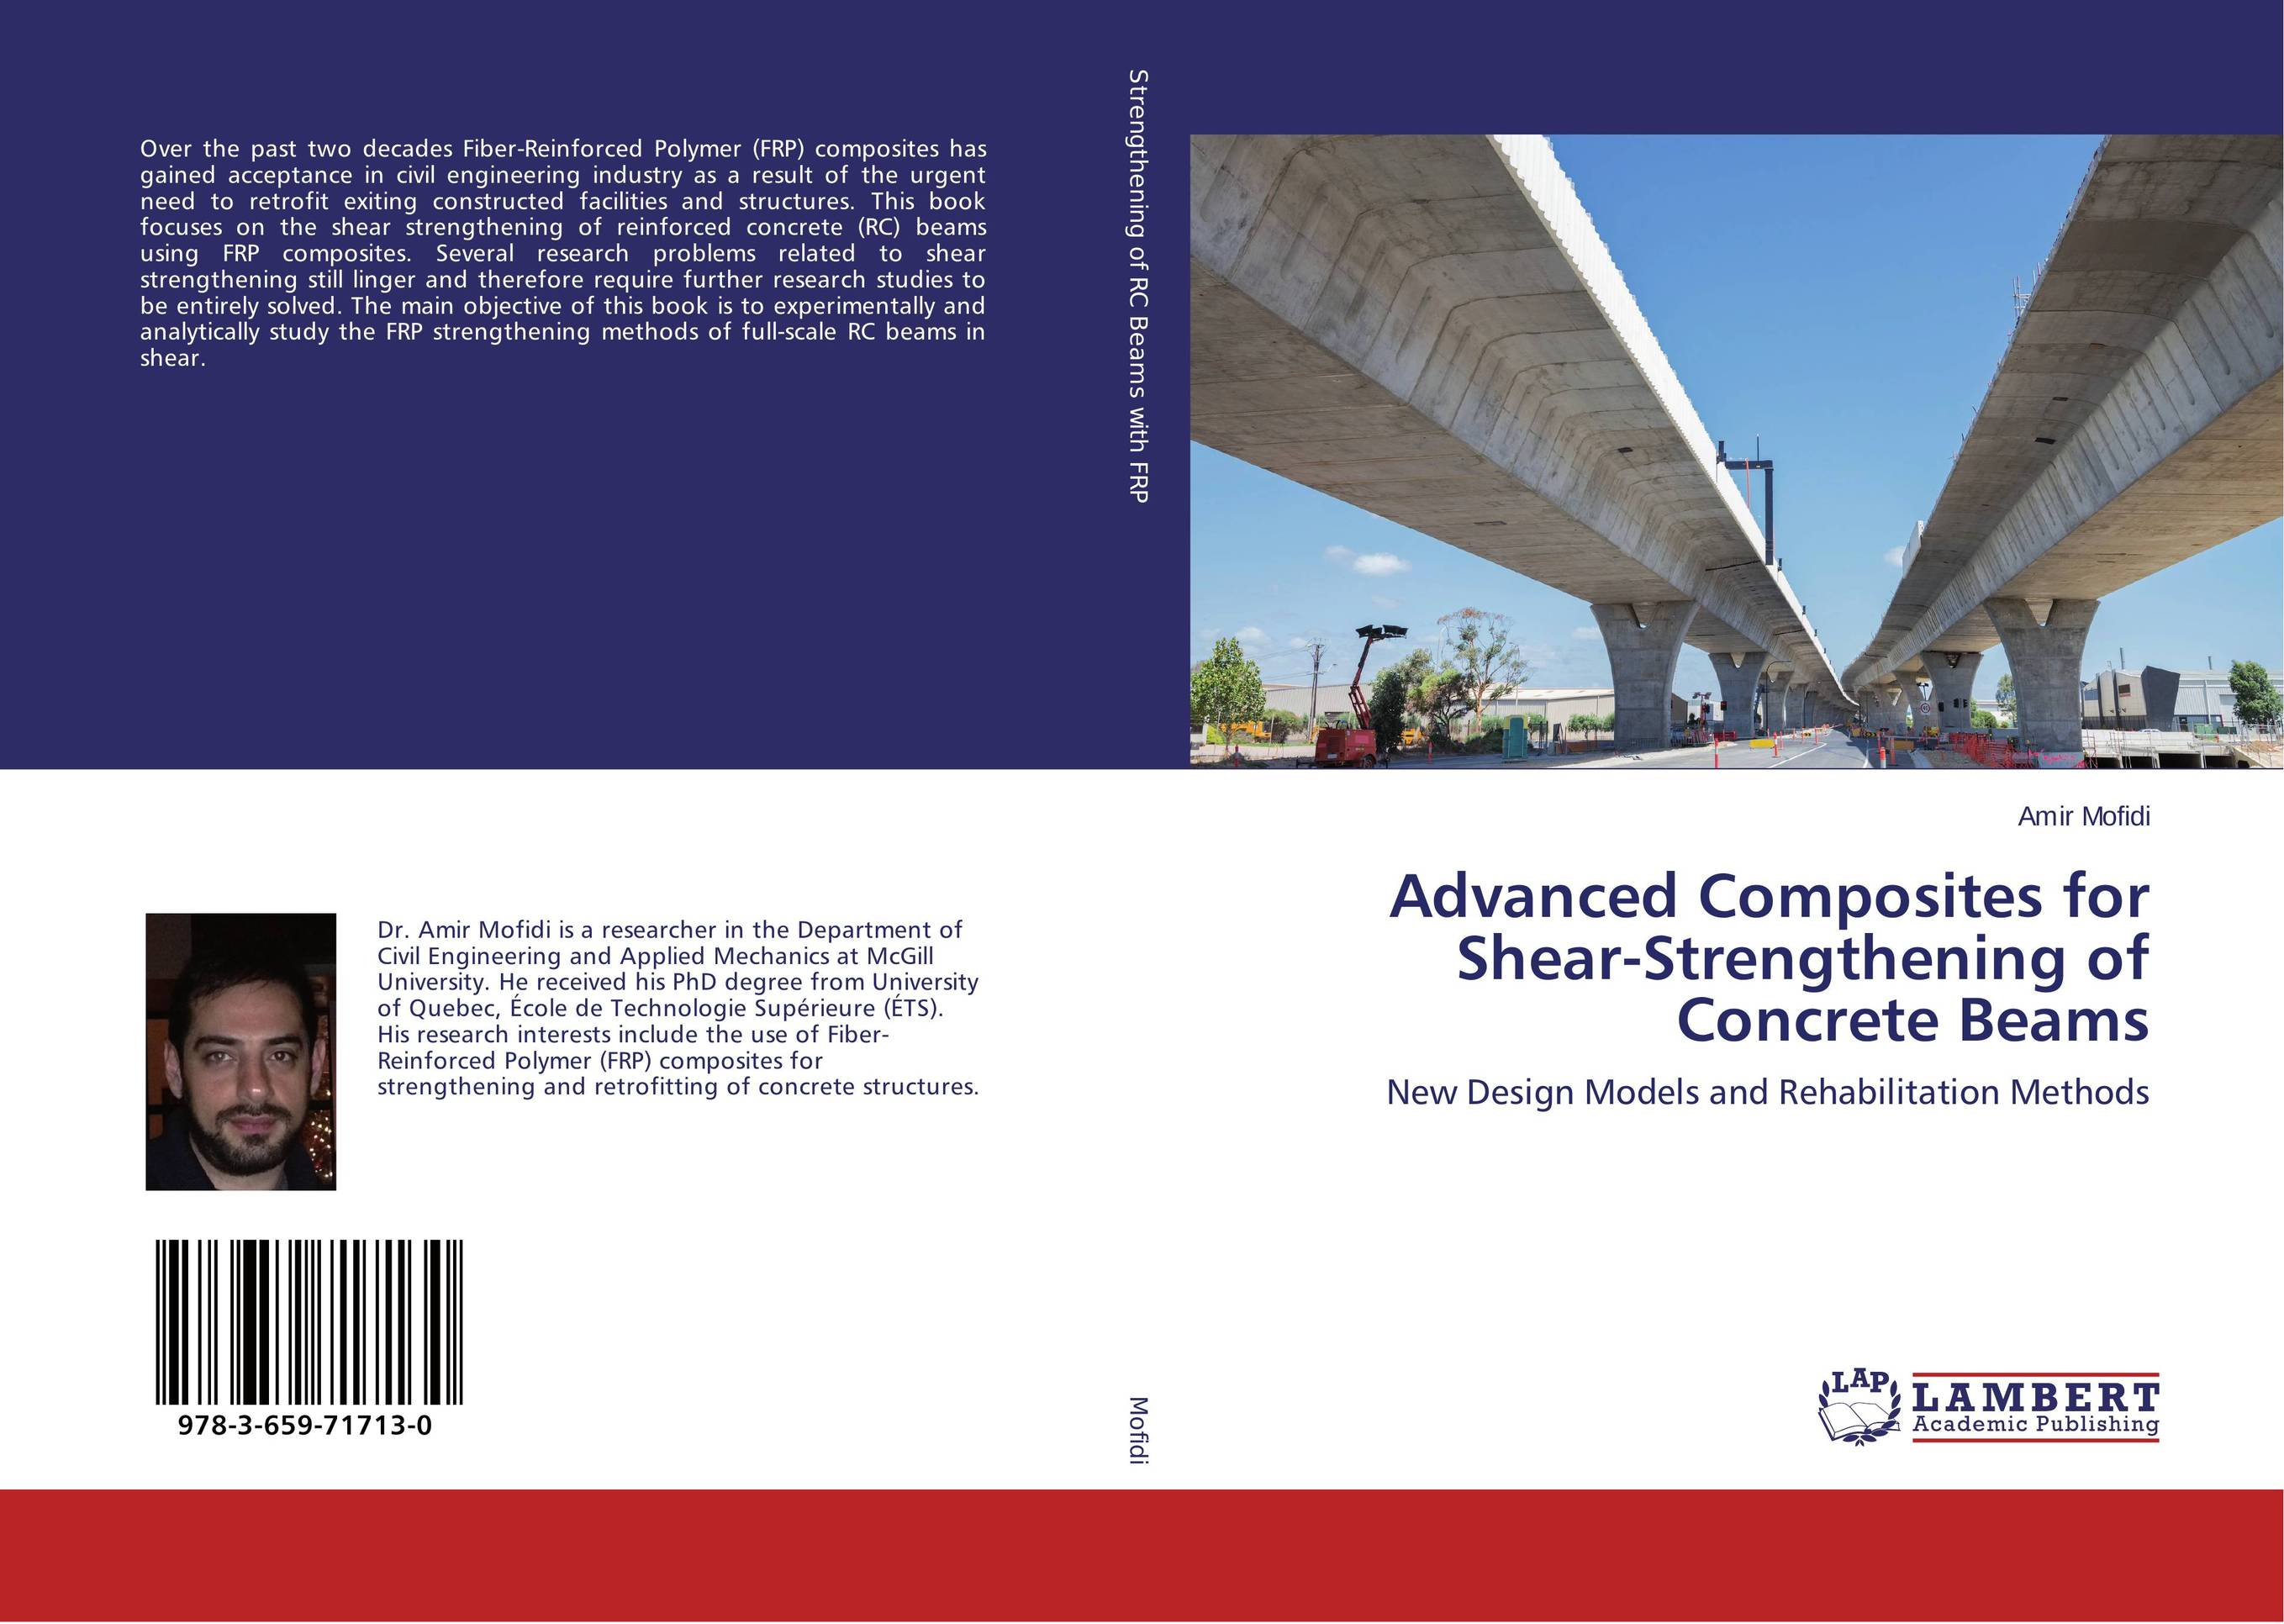 Advanced Composites for Shear-Strengthening of Concrete Beams studies on in situ microfibrillar composites